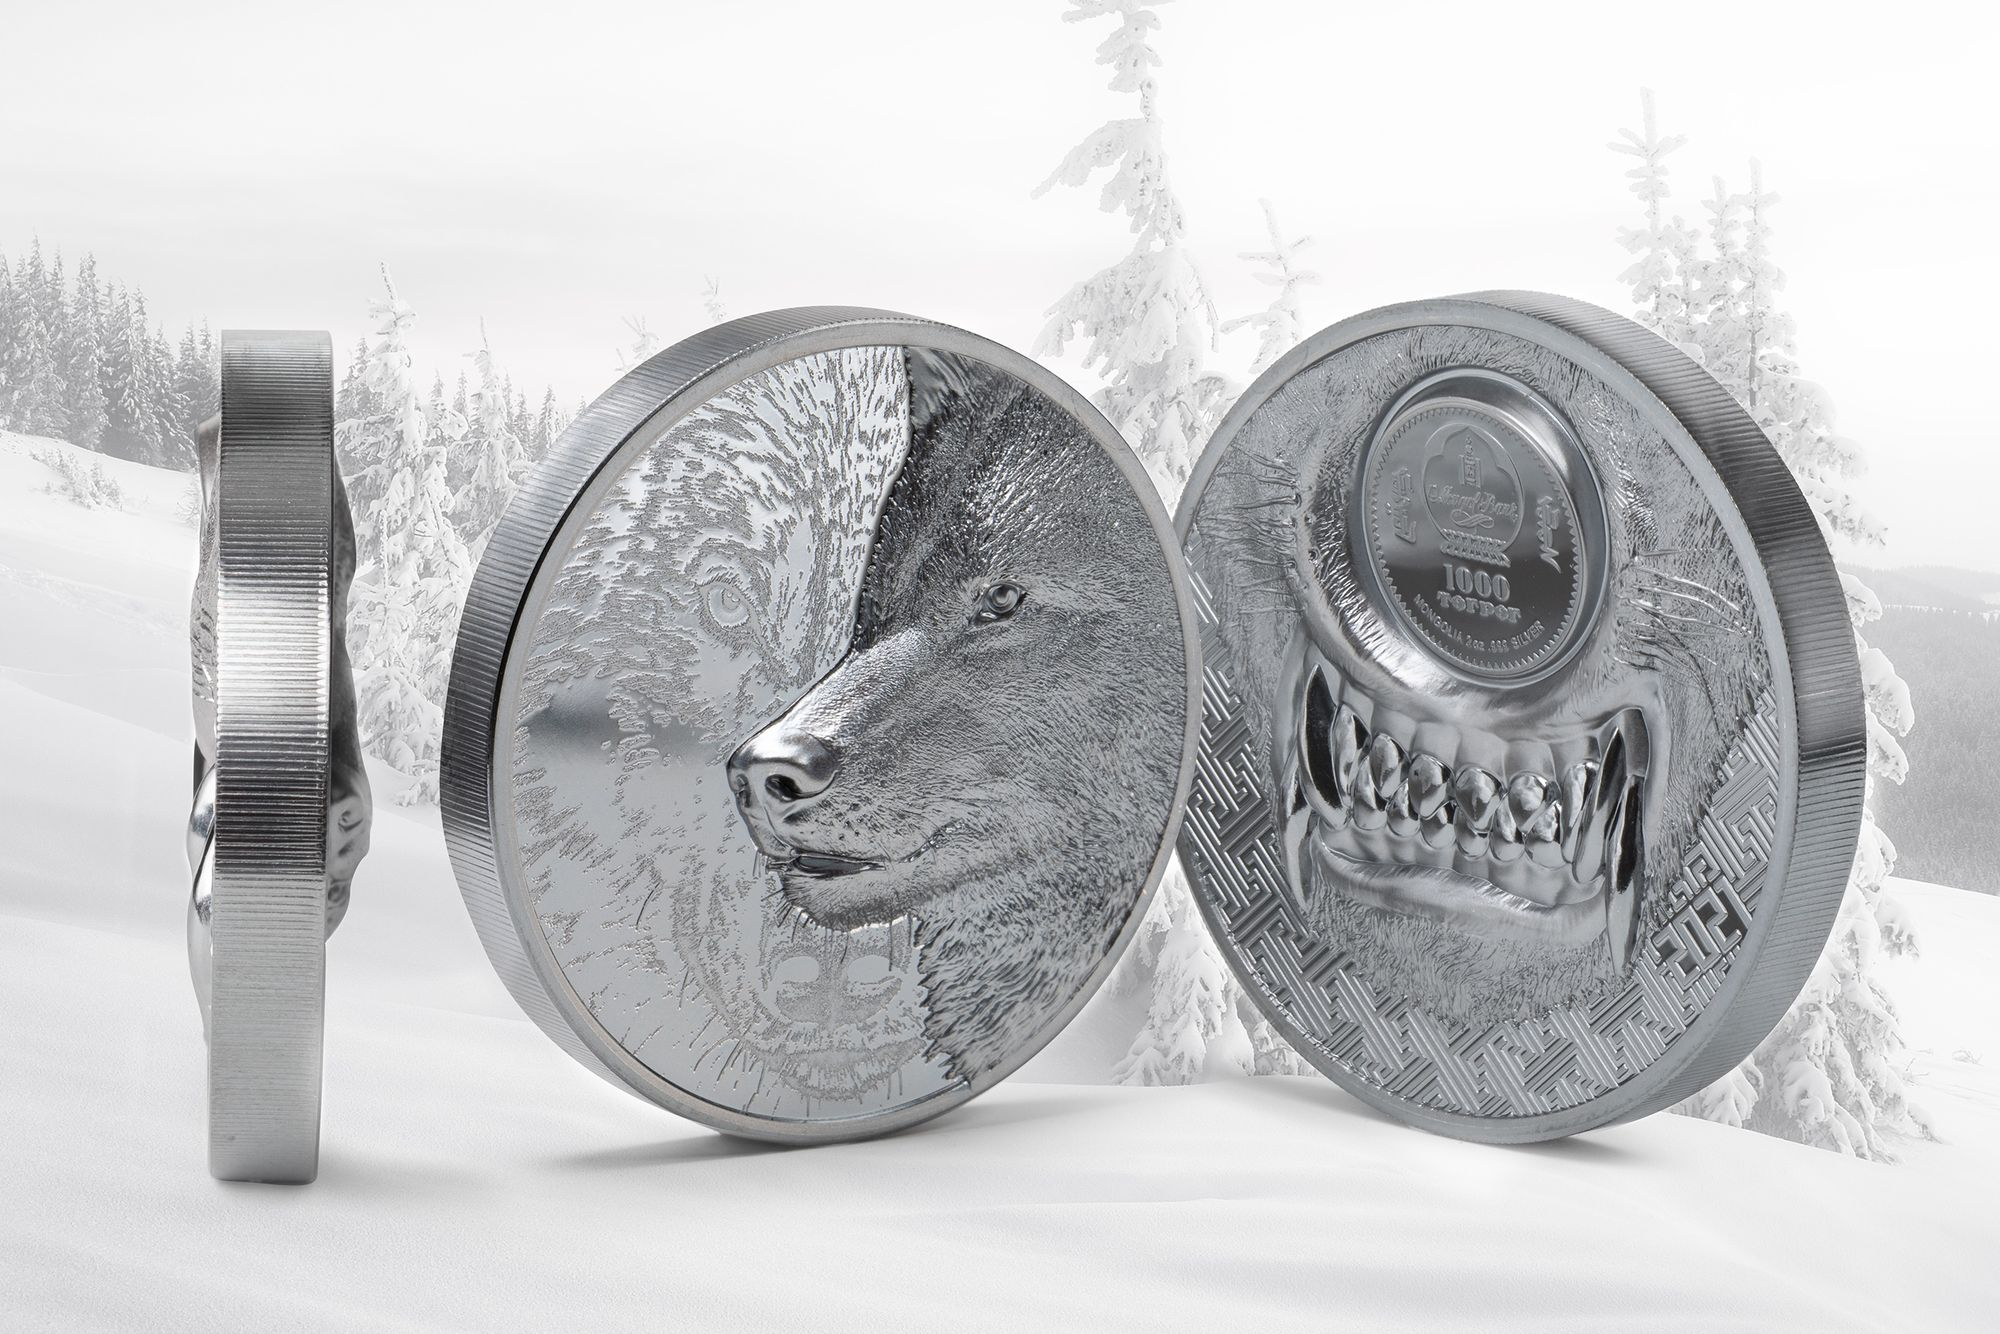 2021 Mystic Wolf Black Proof 2oz Silver Coin